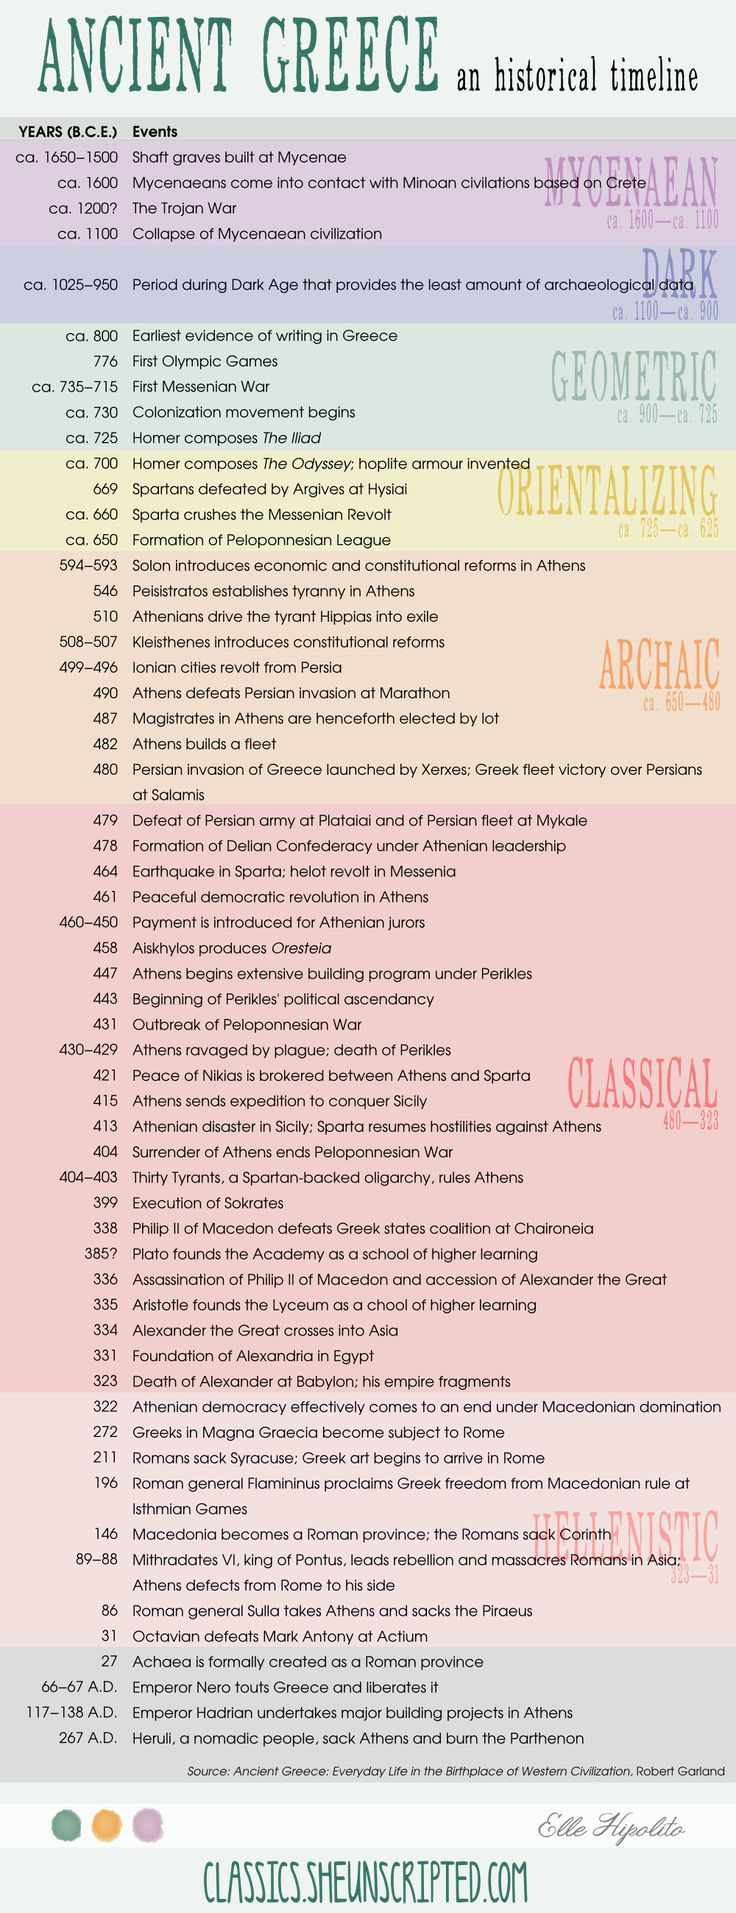 A timeline of ancient Greek history - love this stuff!!